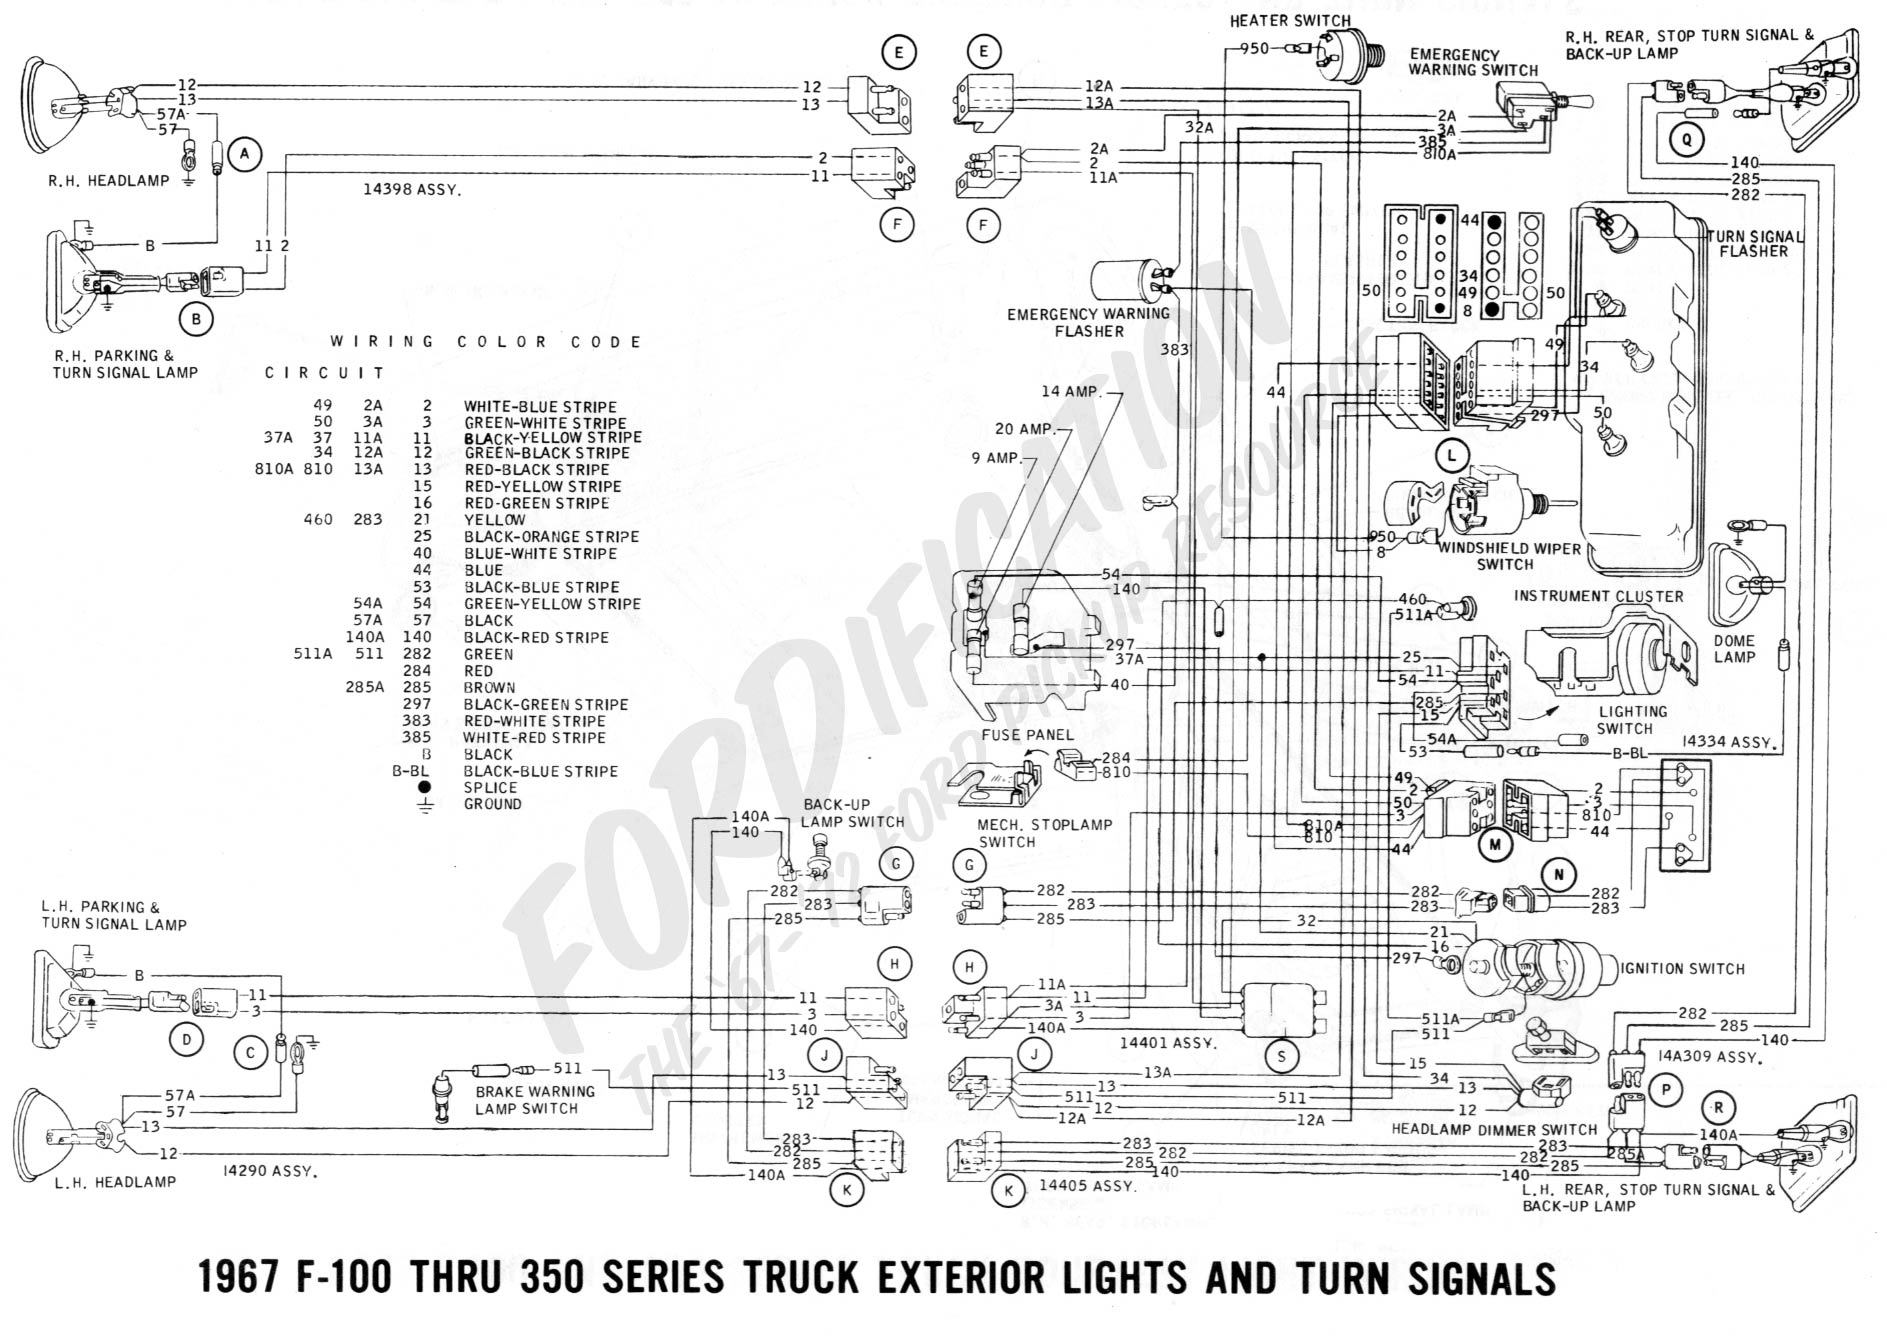 80 1967_exterior_lights_and_turn_signals_page_2_1db6c529c4c9567560e56d6320f993290ba5b803 1967 mustang wiring diagram efcaviation com 1966 mustang fuse box diagram at bayanpartner.co